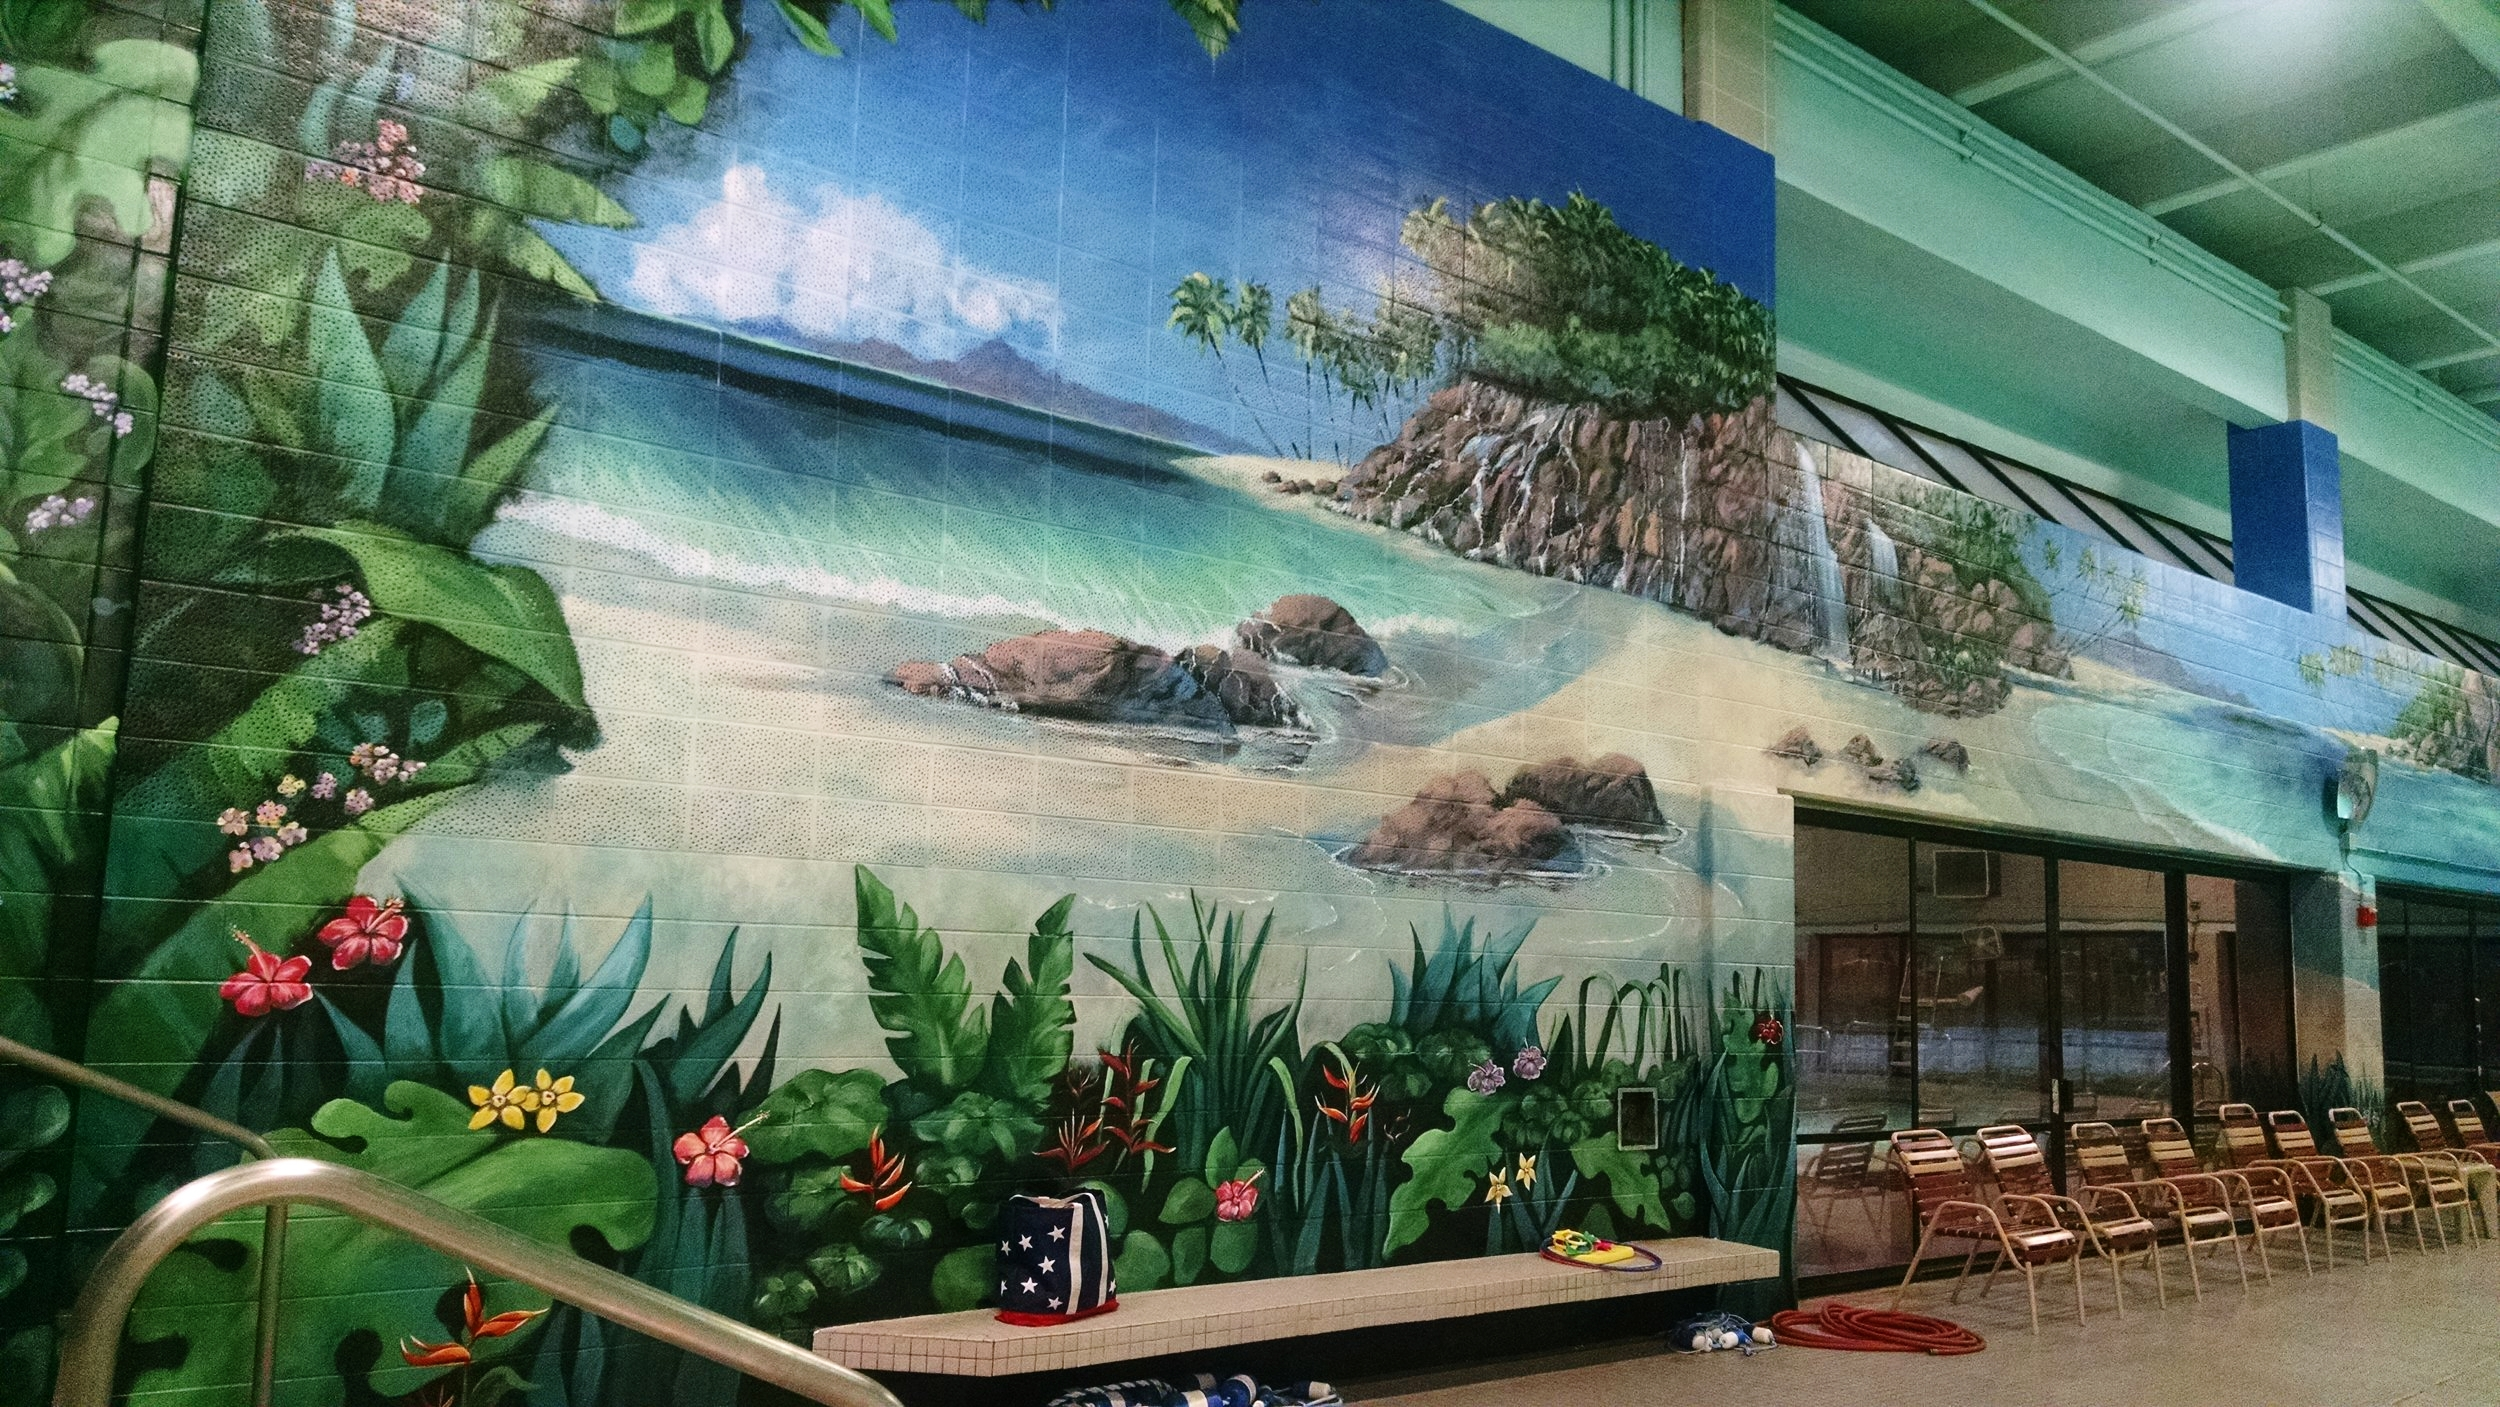 Highlight of the week was getting back into the pool.  This mural runs across the whole side wall and the picture does not do it justice.